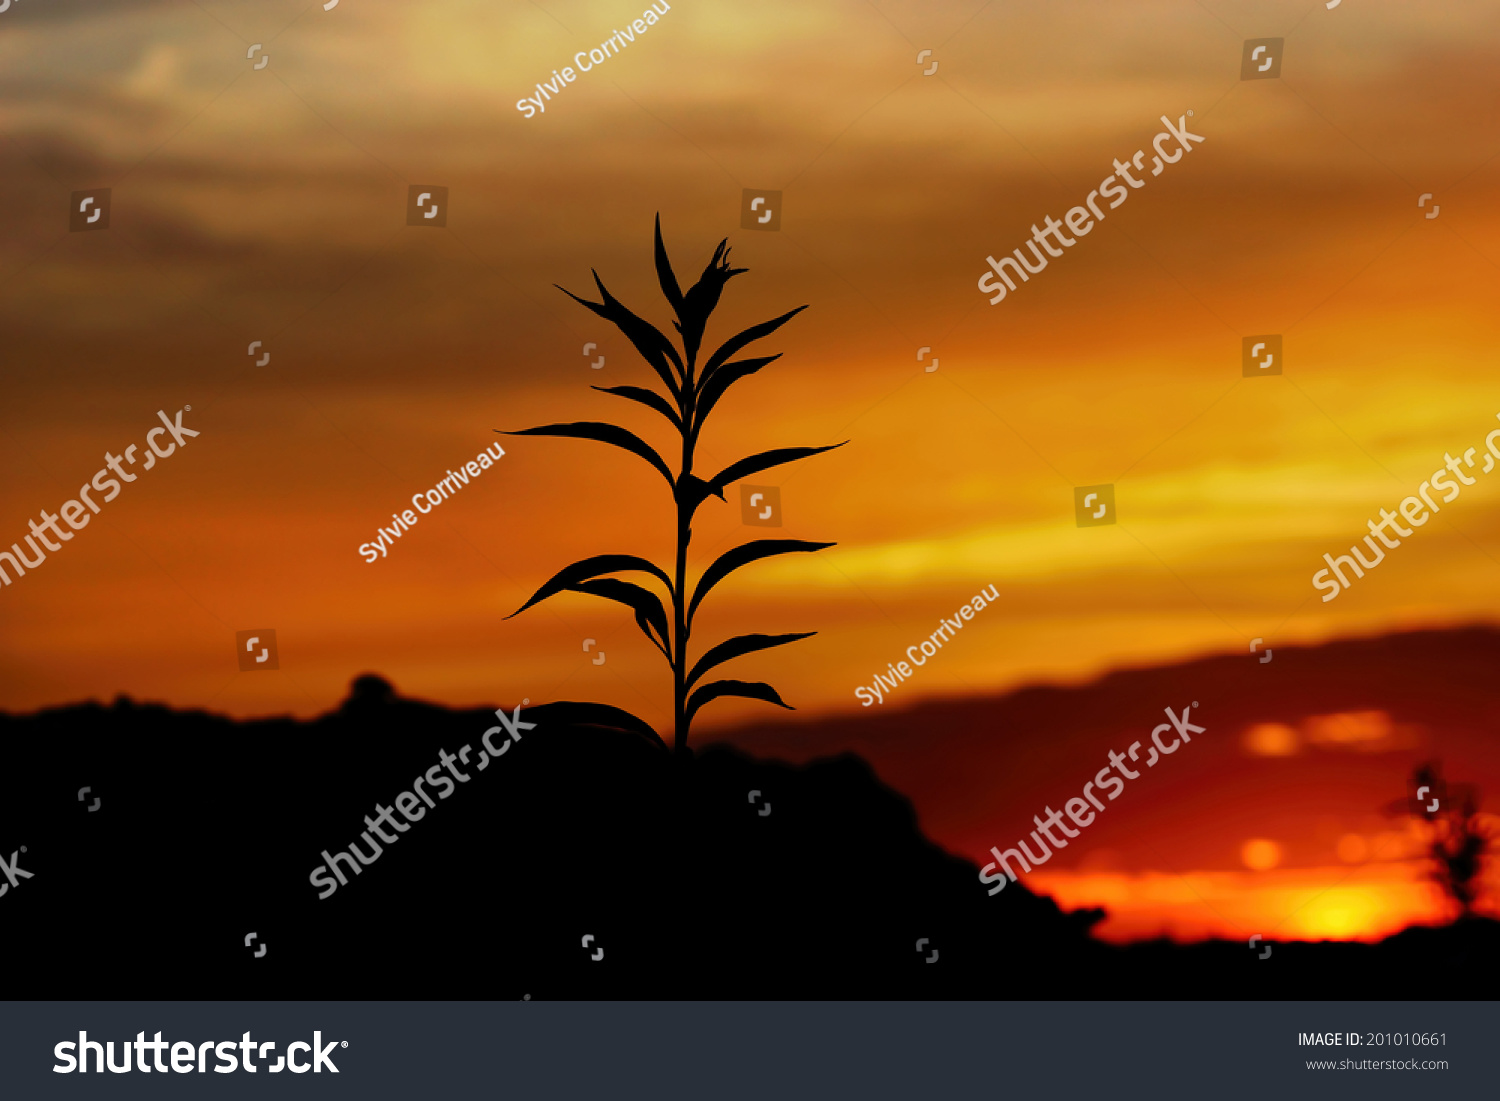 tall grass silhouette. Tall Grass Silhouette At Dramatic Golden Sunset